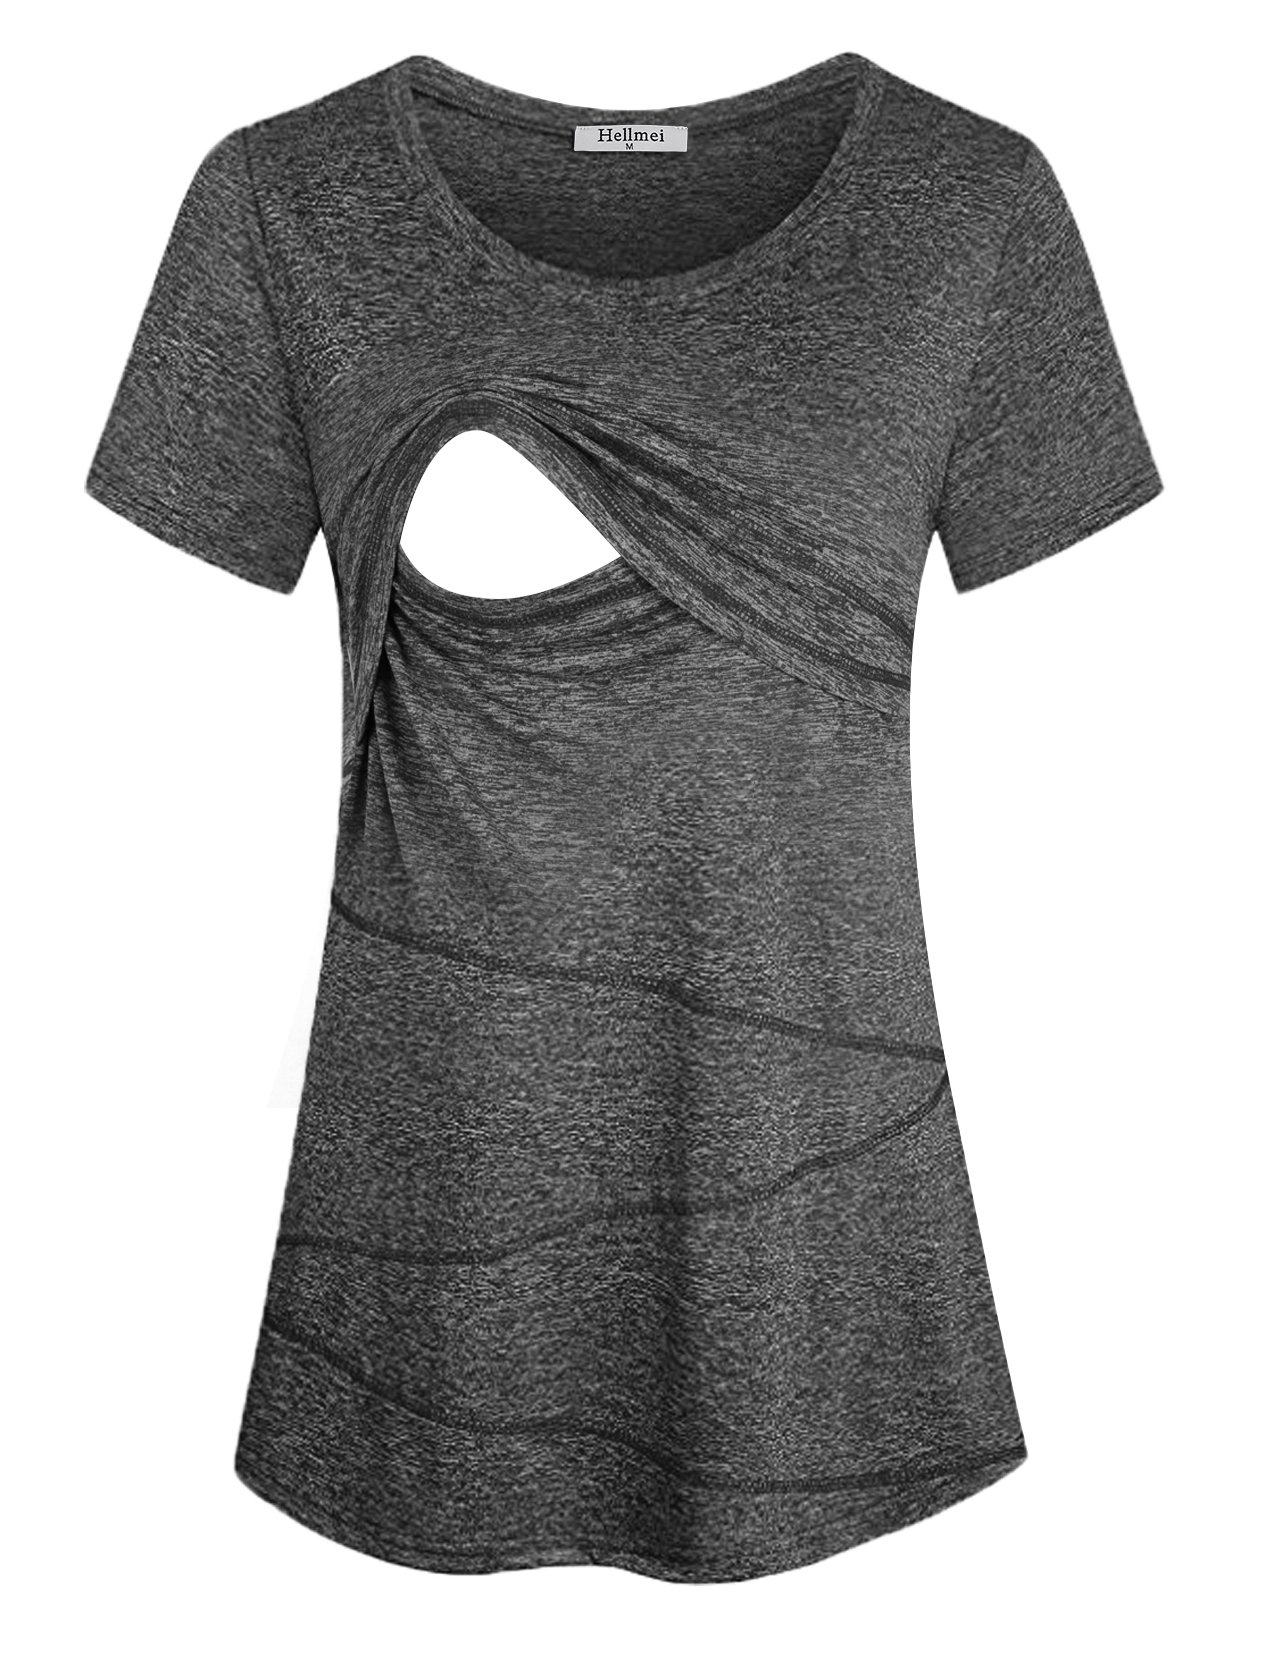 Hellmei Breatfeeding Tunic, Women Summer Layered Comfy Nursing Top Shirt Soft Cotton Stretchy Solid Relaxed Fit Round Neck Casual Maternity Clothing Plus Size(XX-Large, 03BlackGrey)